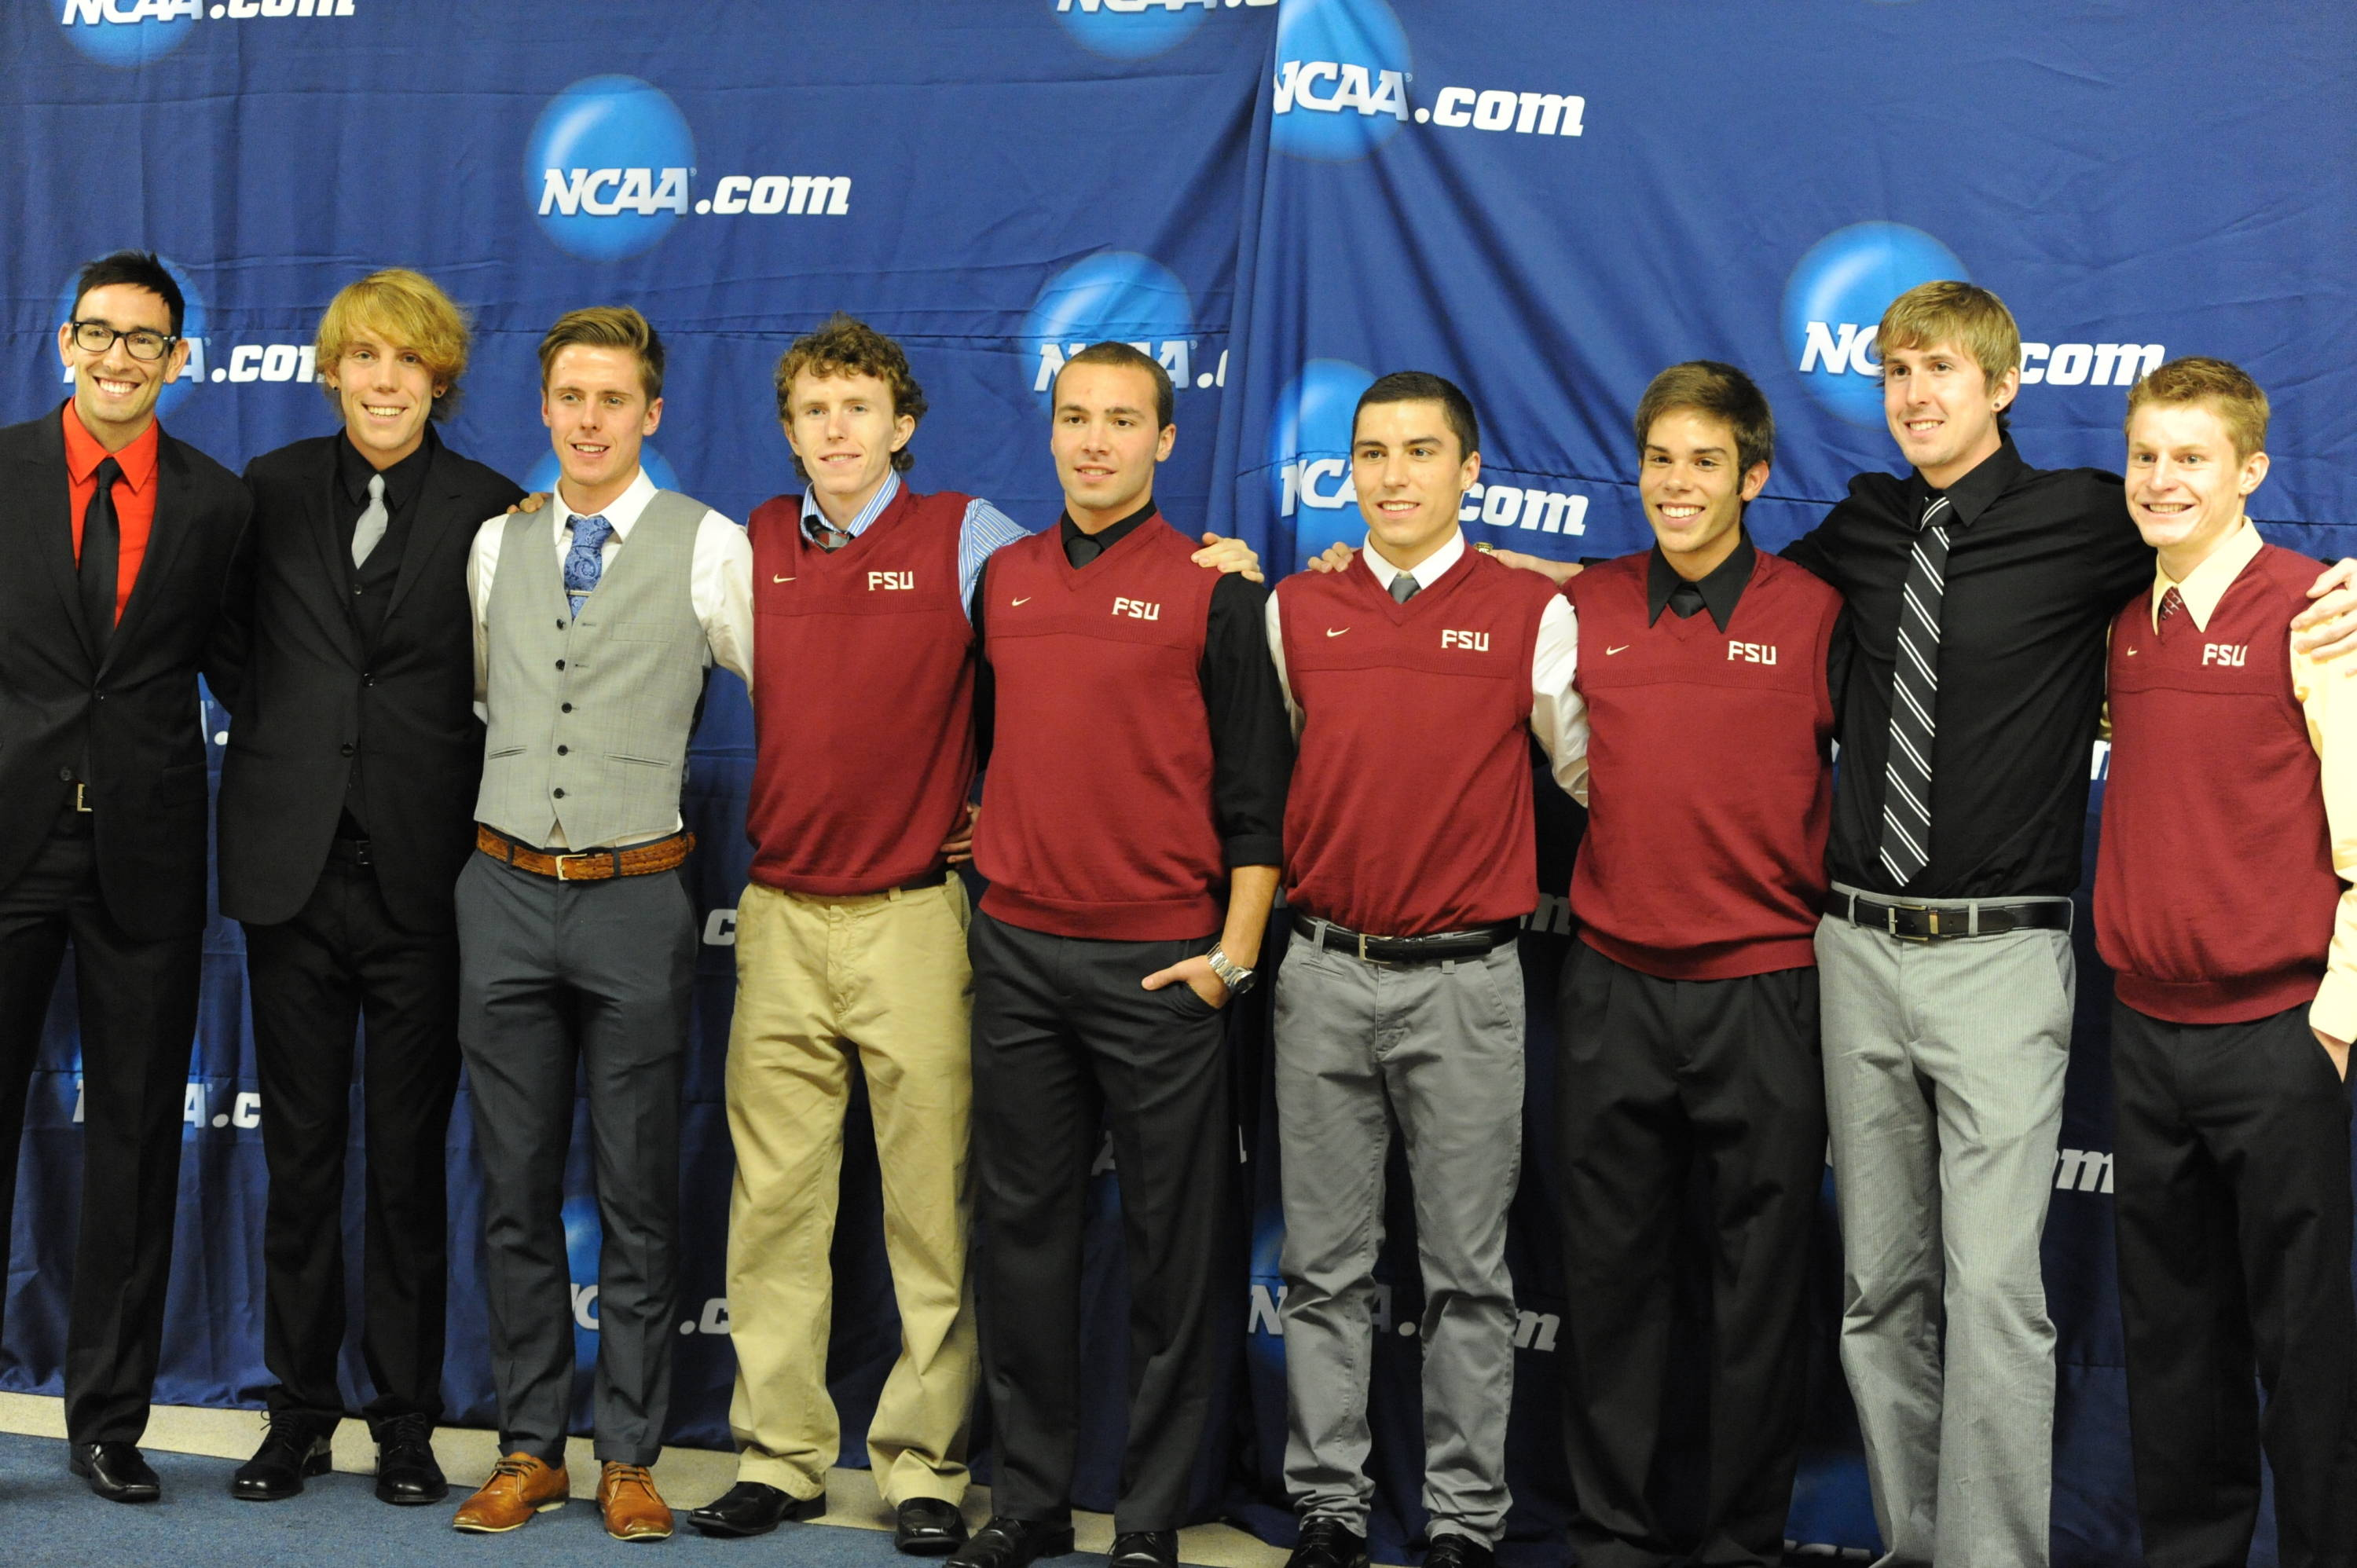 The FSU men's cross country team was honored at the 2011 NCAA Division I Championship banquet Saturday.